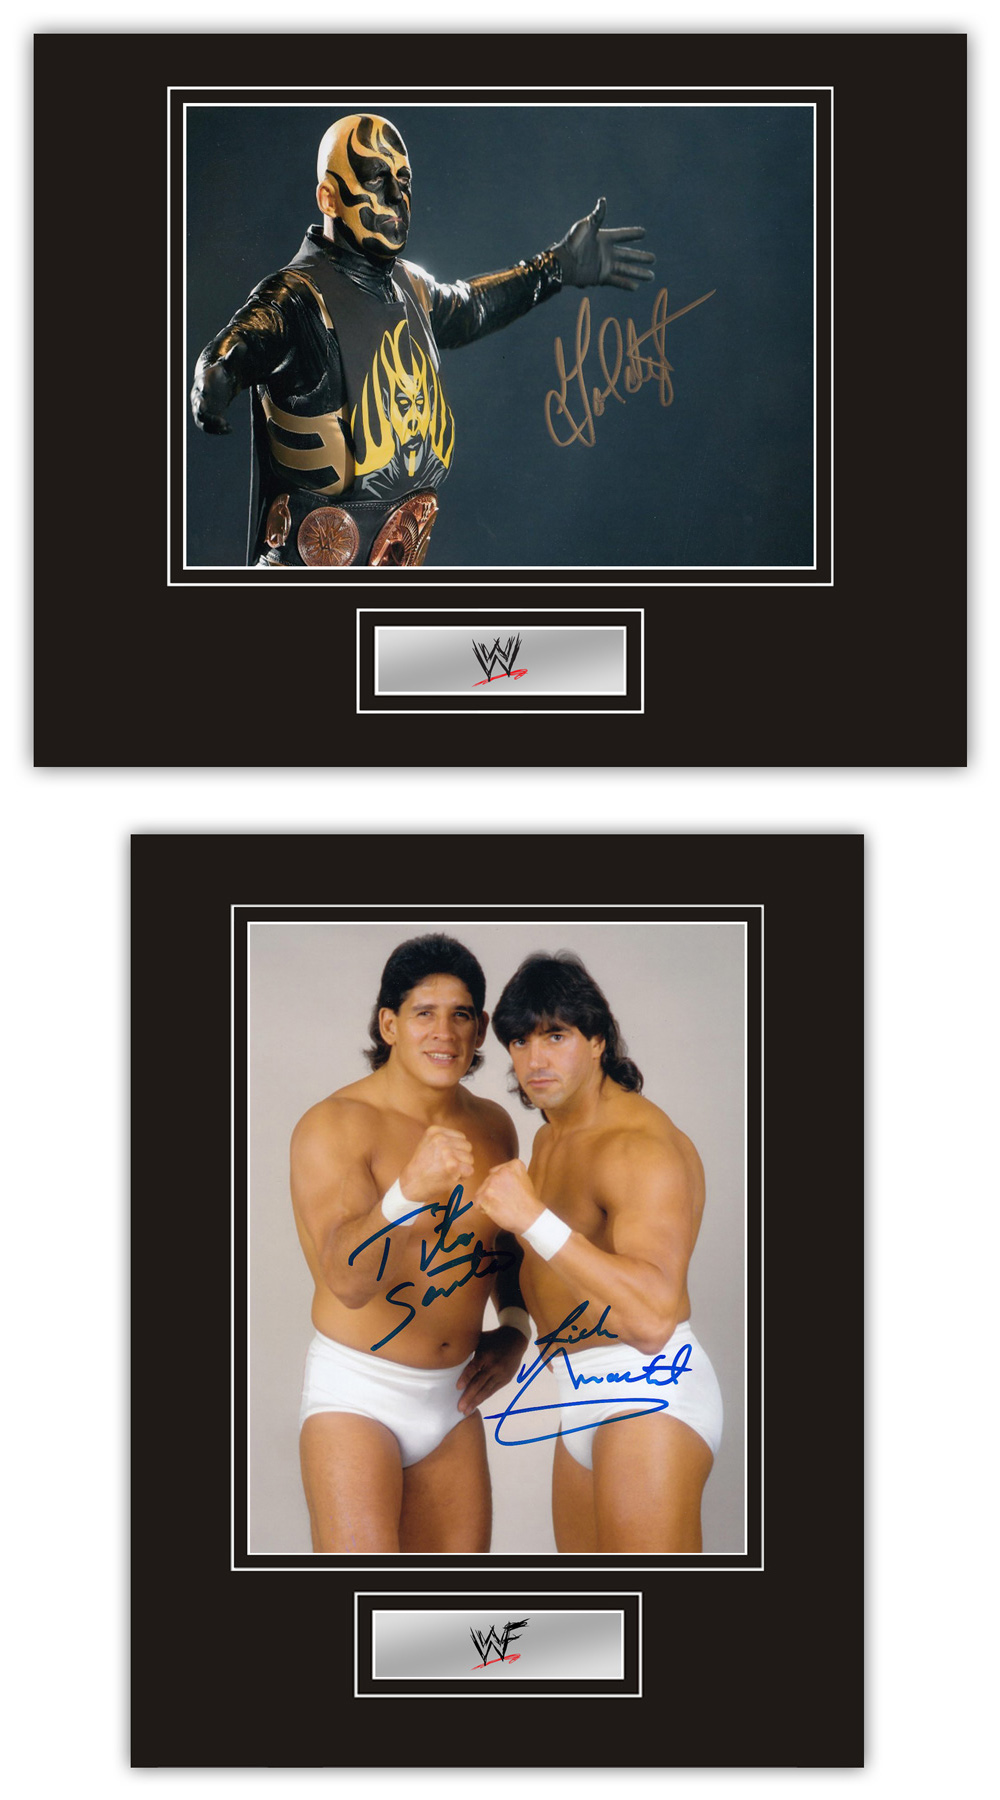 Set of 2 Stunning Displays! WWF / WWE Wrestling hand signed professionally mounted displays. This